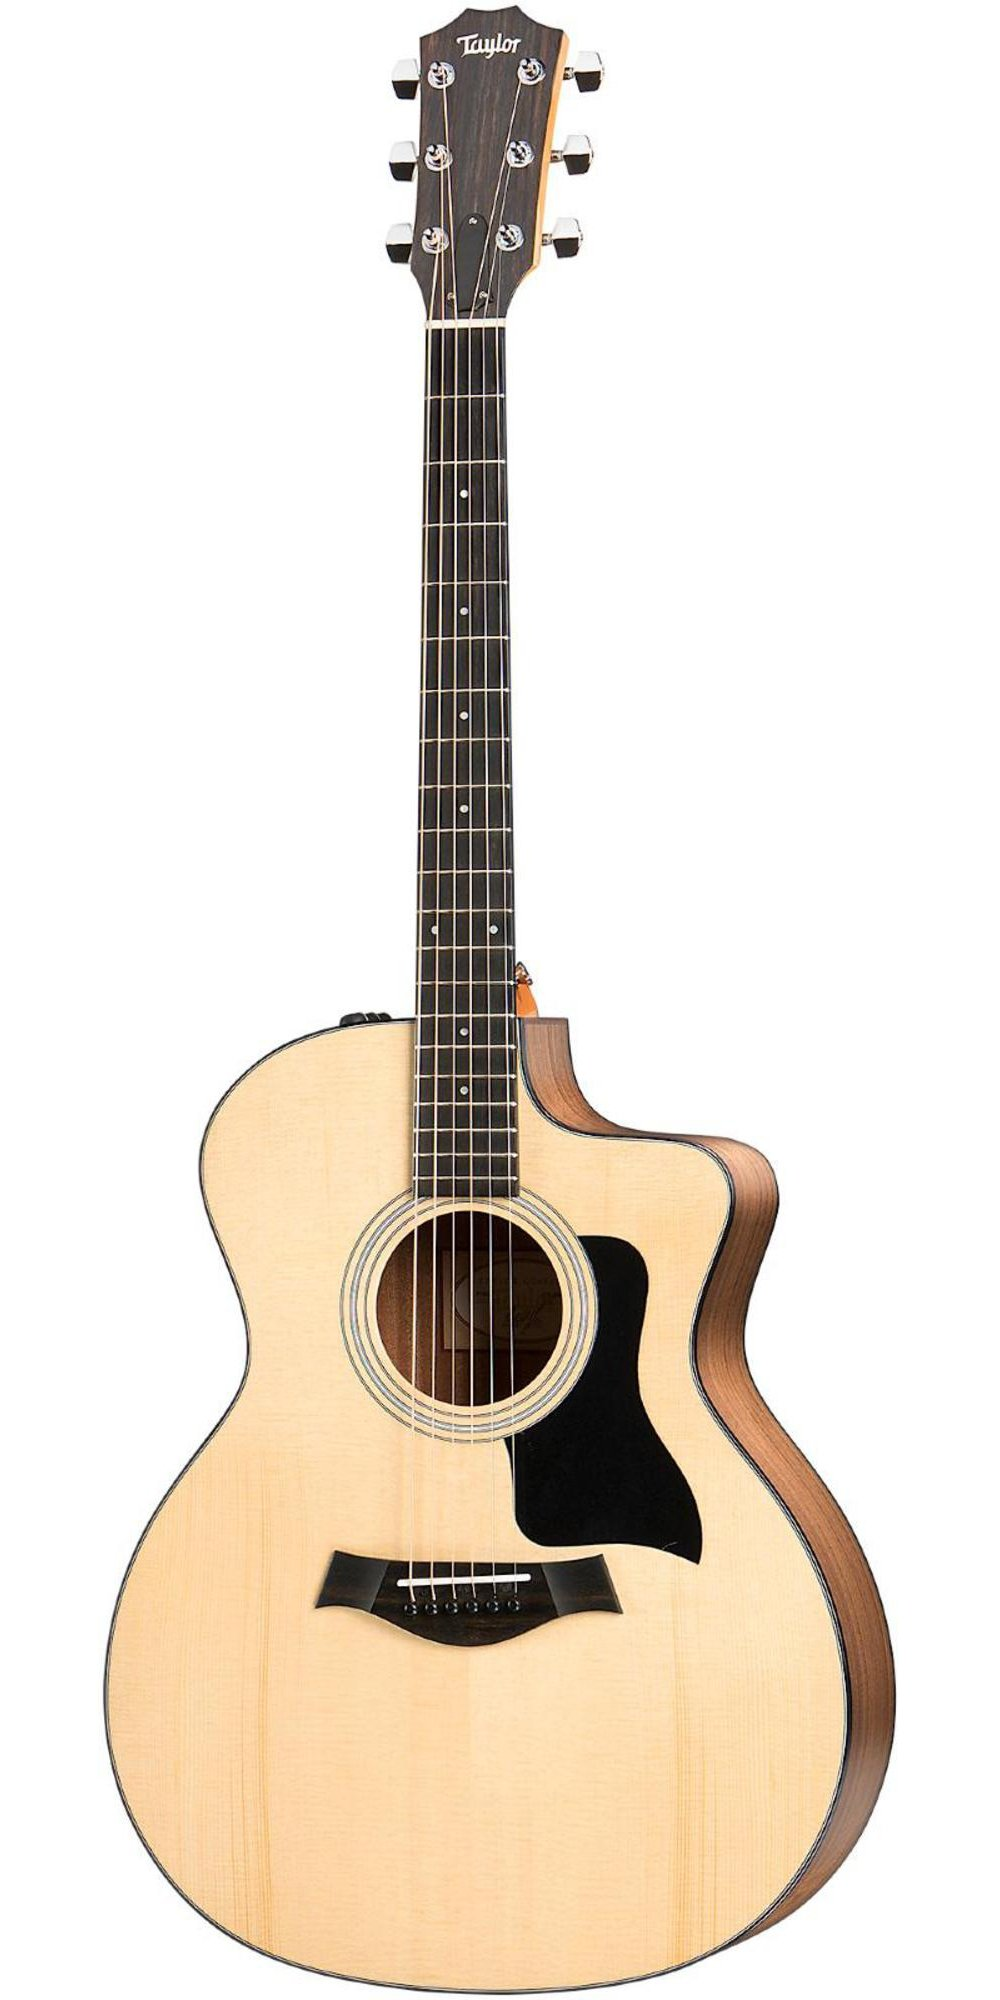 Taylor 114ce 100 Series Acoustic Guitar, Sapele, Grand Auditorium, Cutaway, ES-T